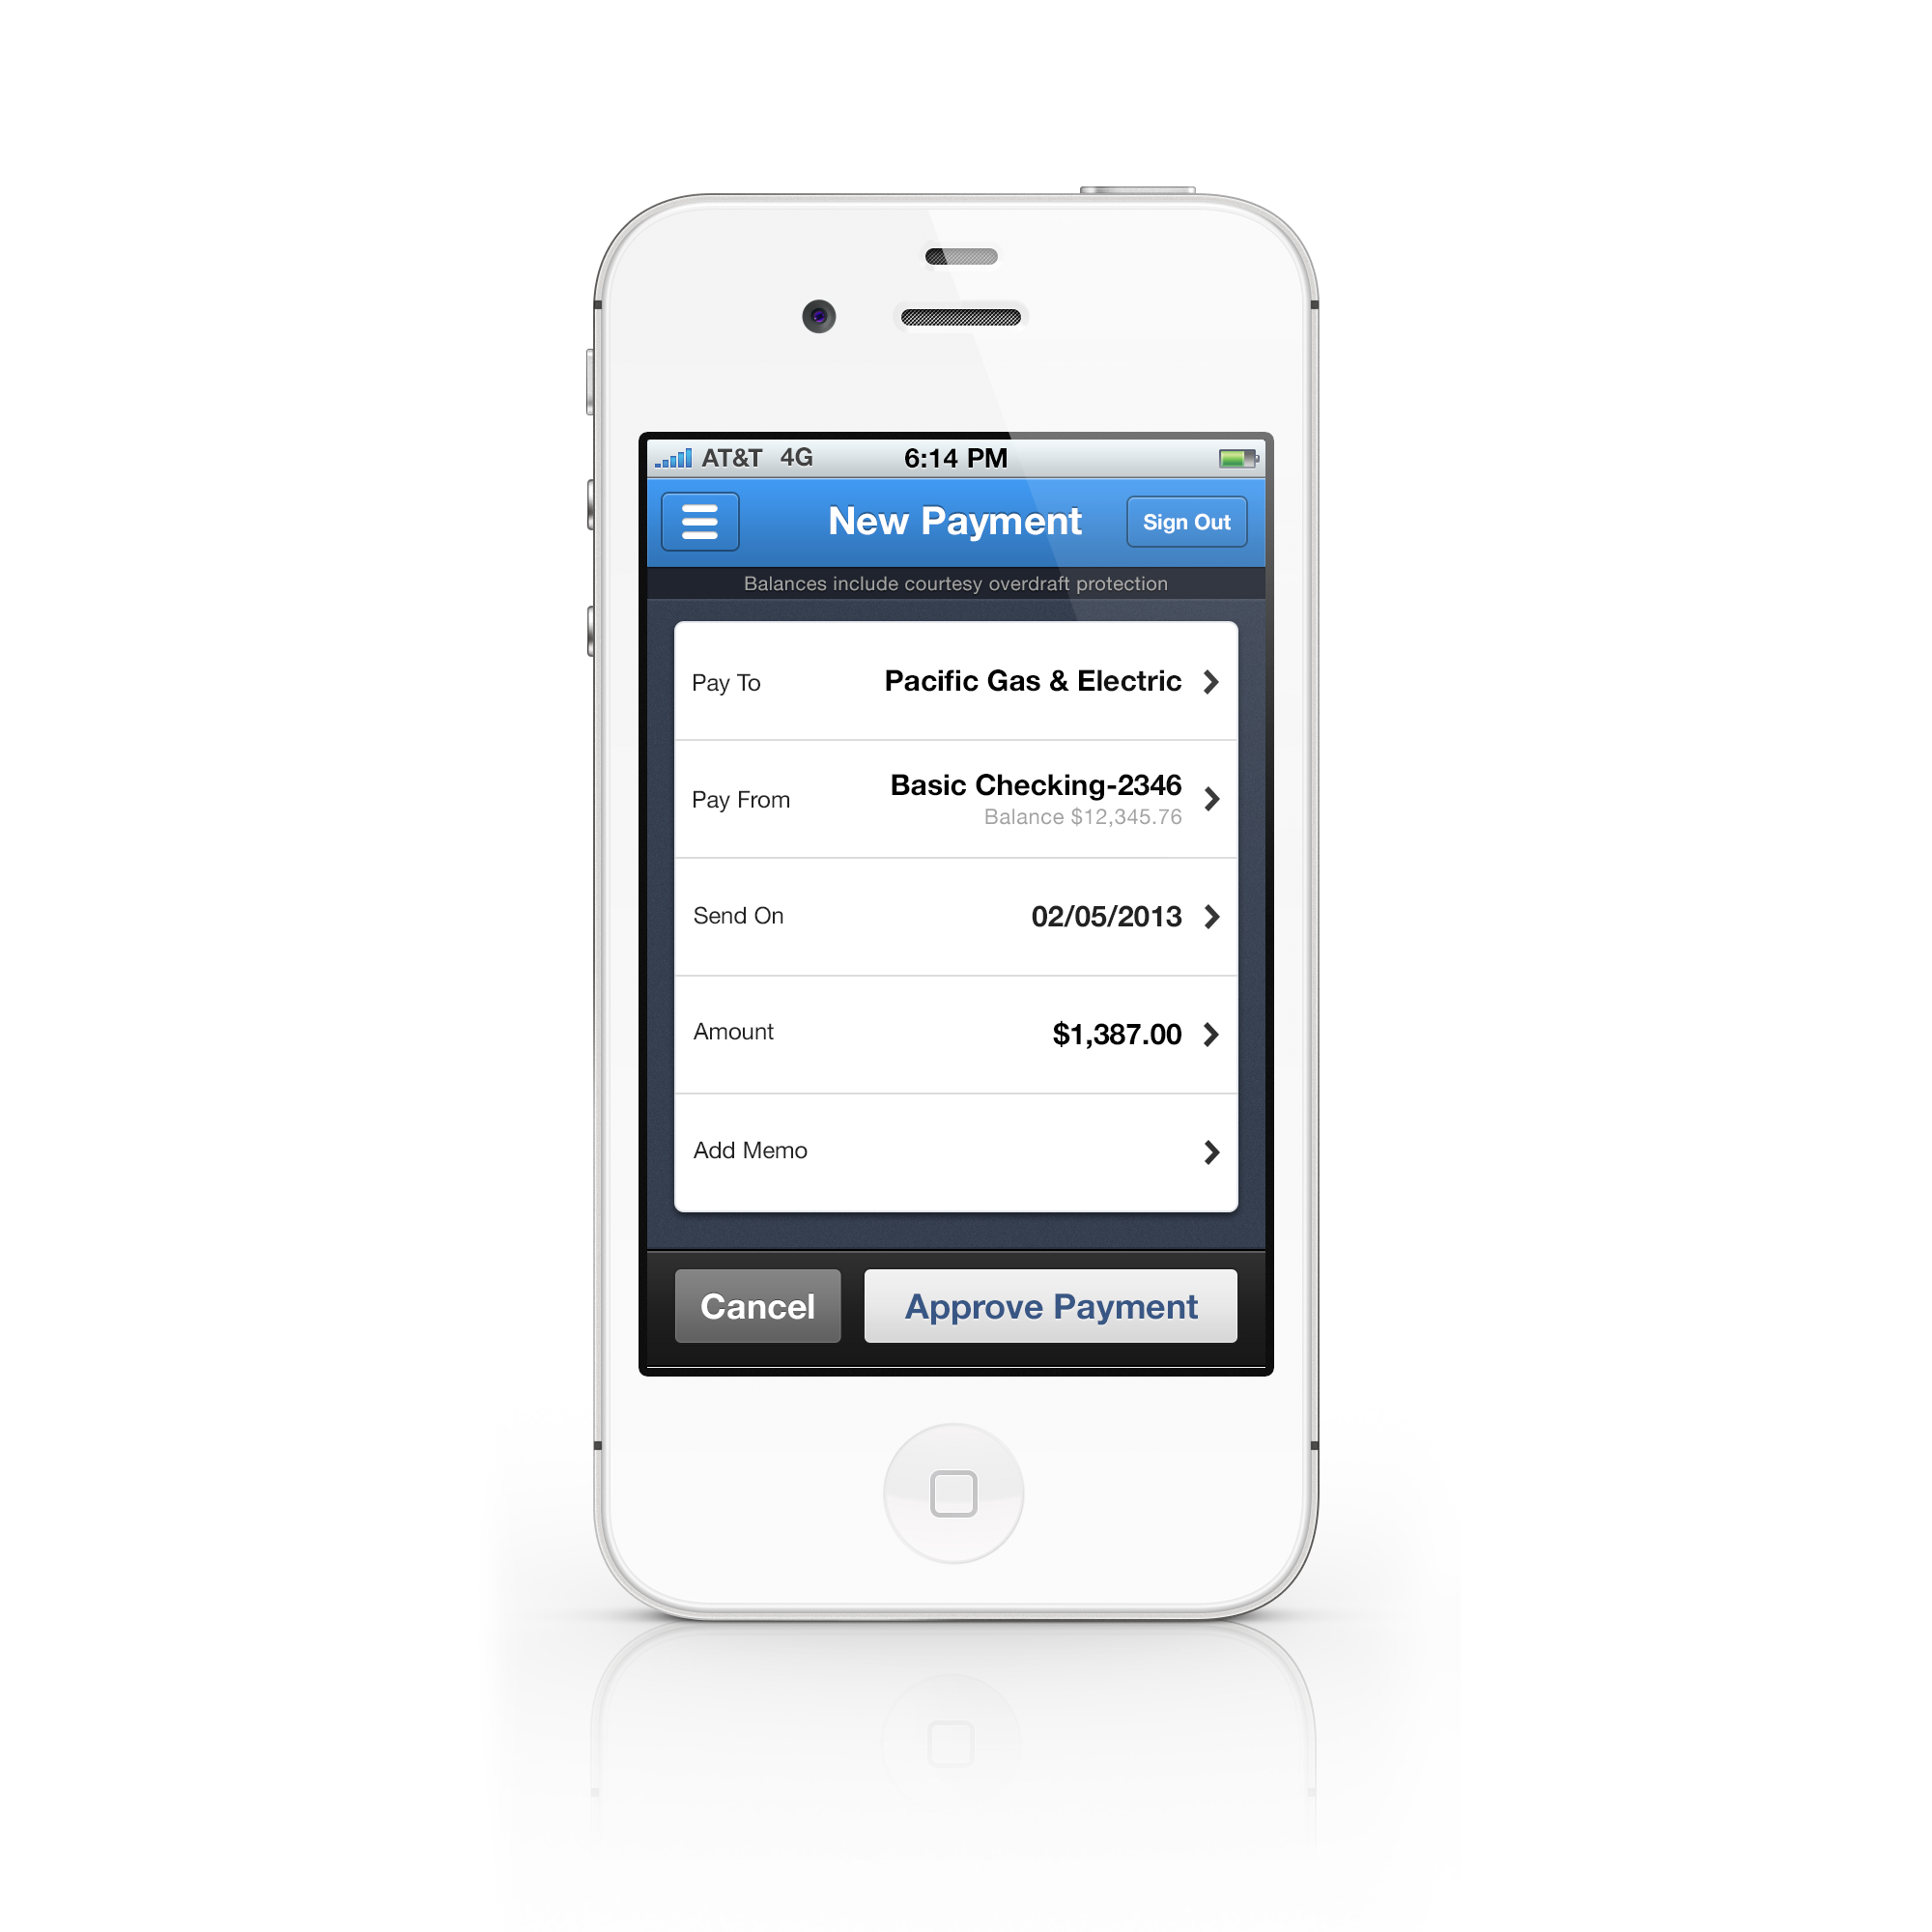 Mobile_Banking_iPhone_4_0020_Layer-Comp-21.png